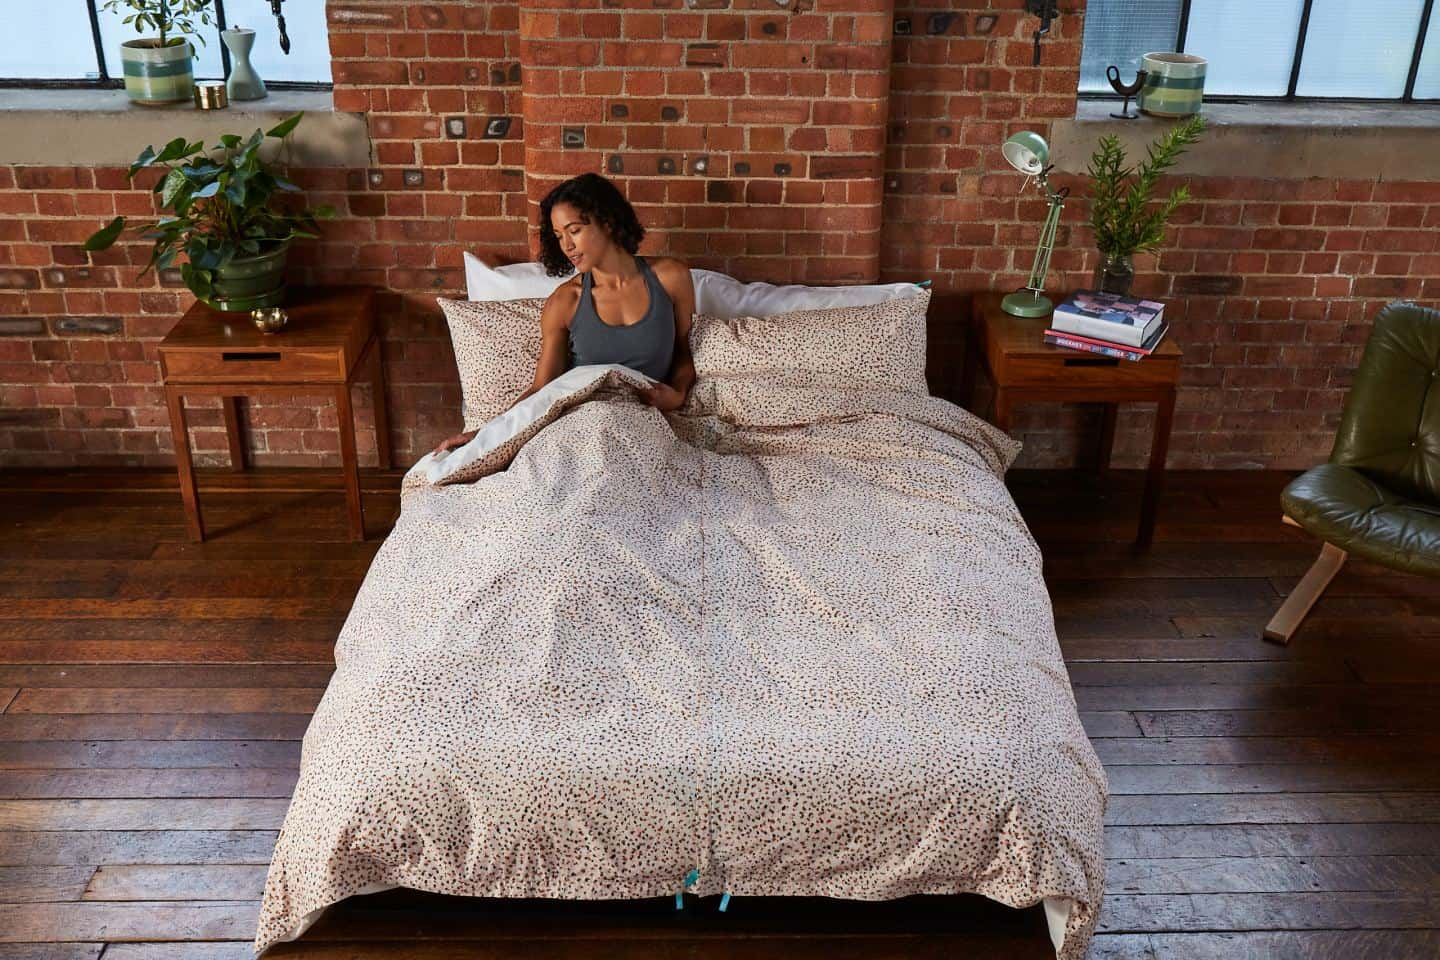 Koa revolutionary duvet cover. A woman in bed in an industrial style loft bedroom. The easy way to change a duvet cover